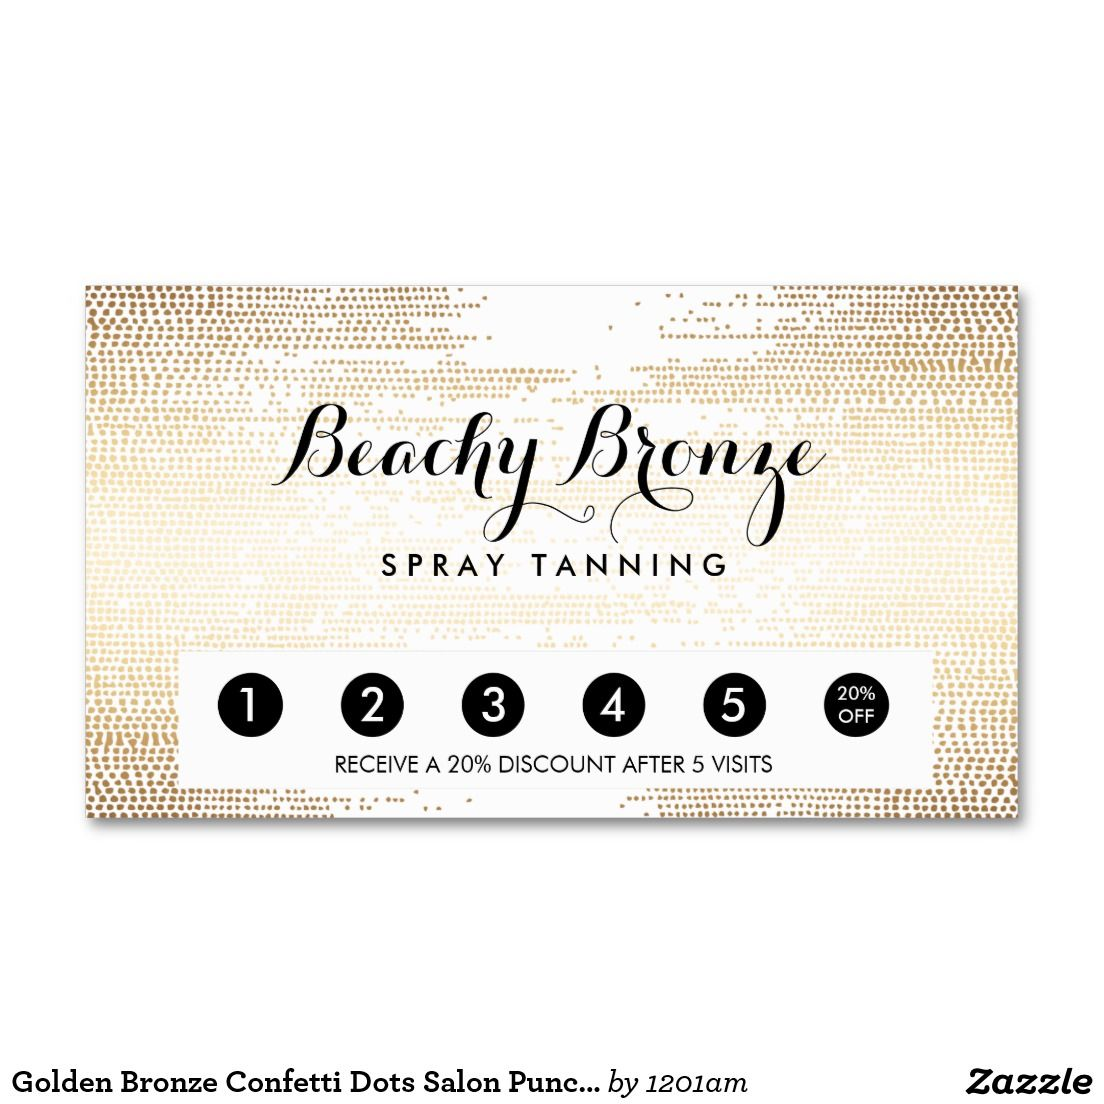 Golden bronze confetti dots salon punch card business cards for golden bronze confetti dots salon punch card business cards for spray tanning salons mobile spray reheart Gallery